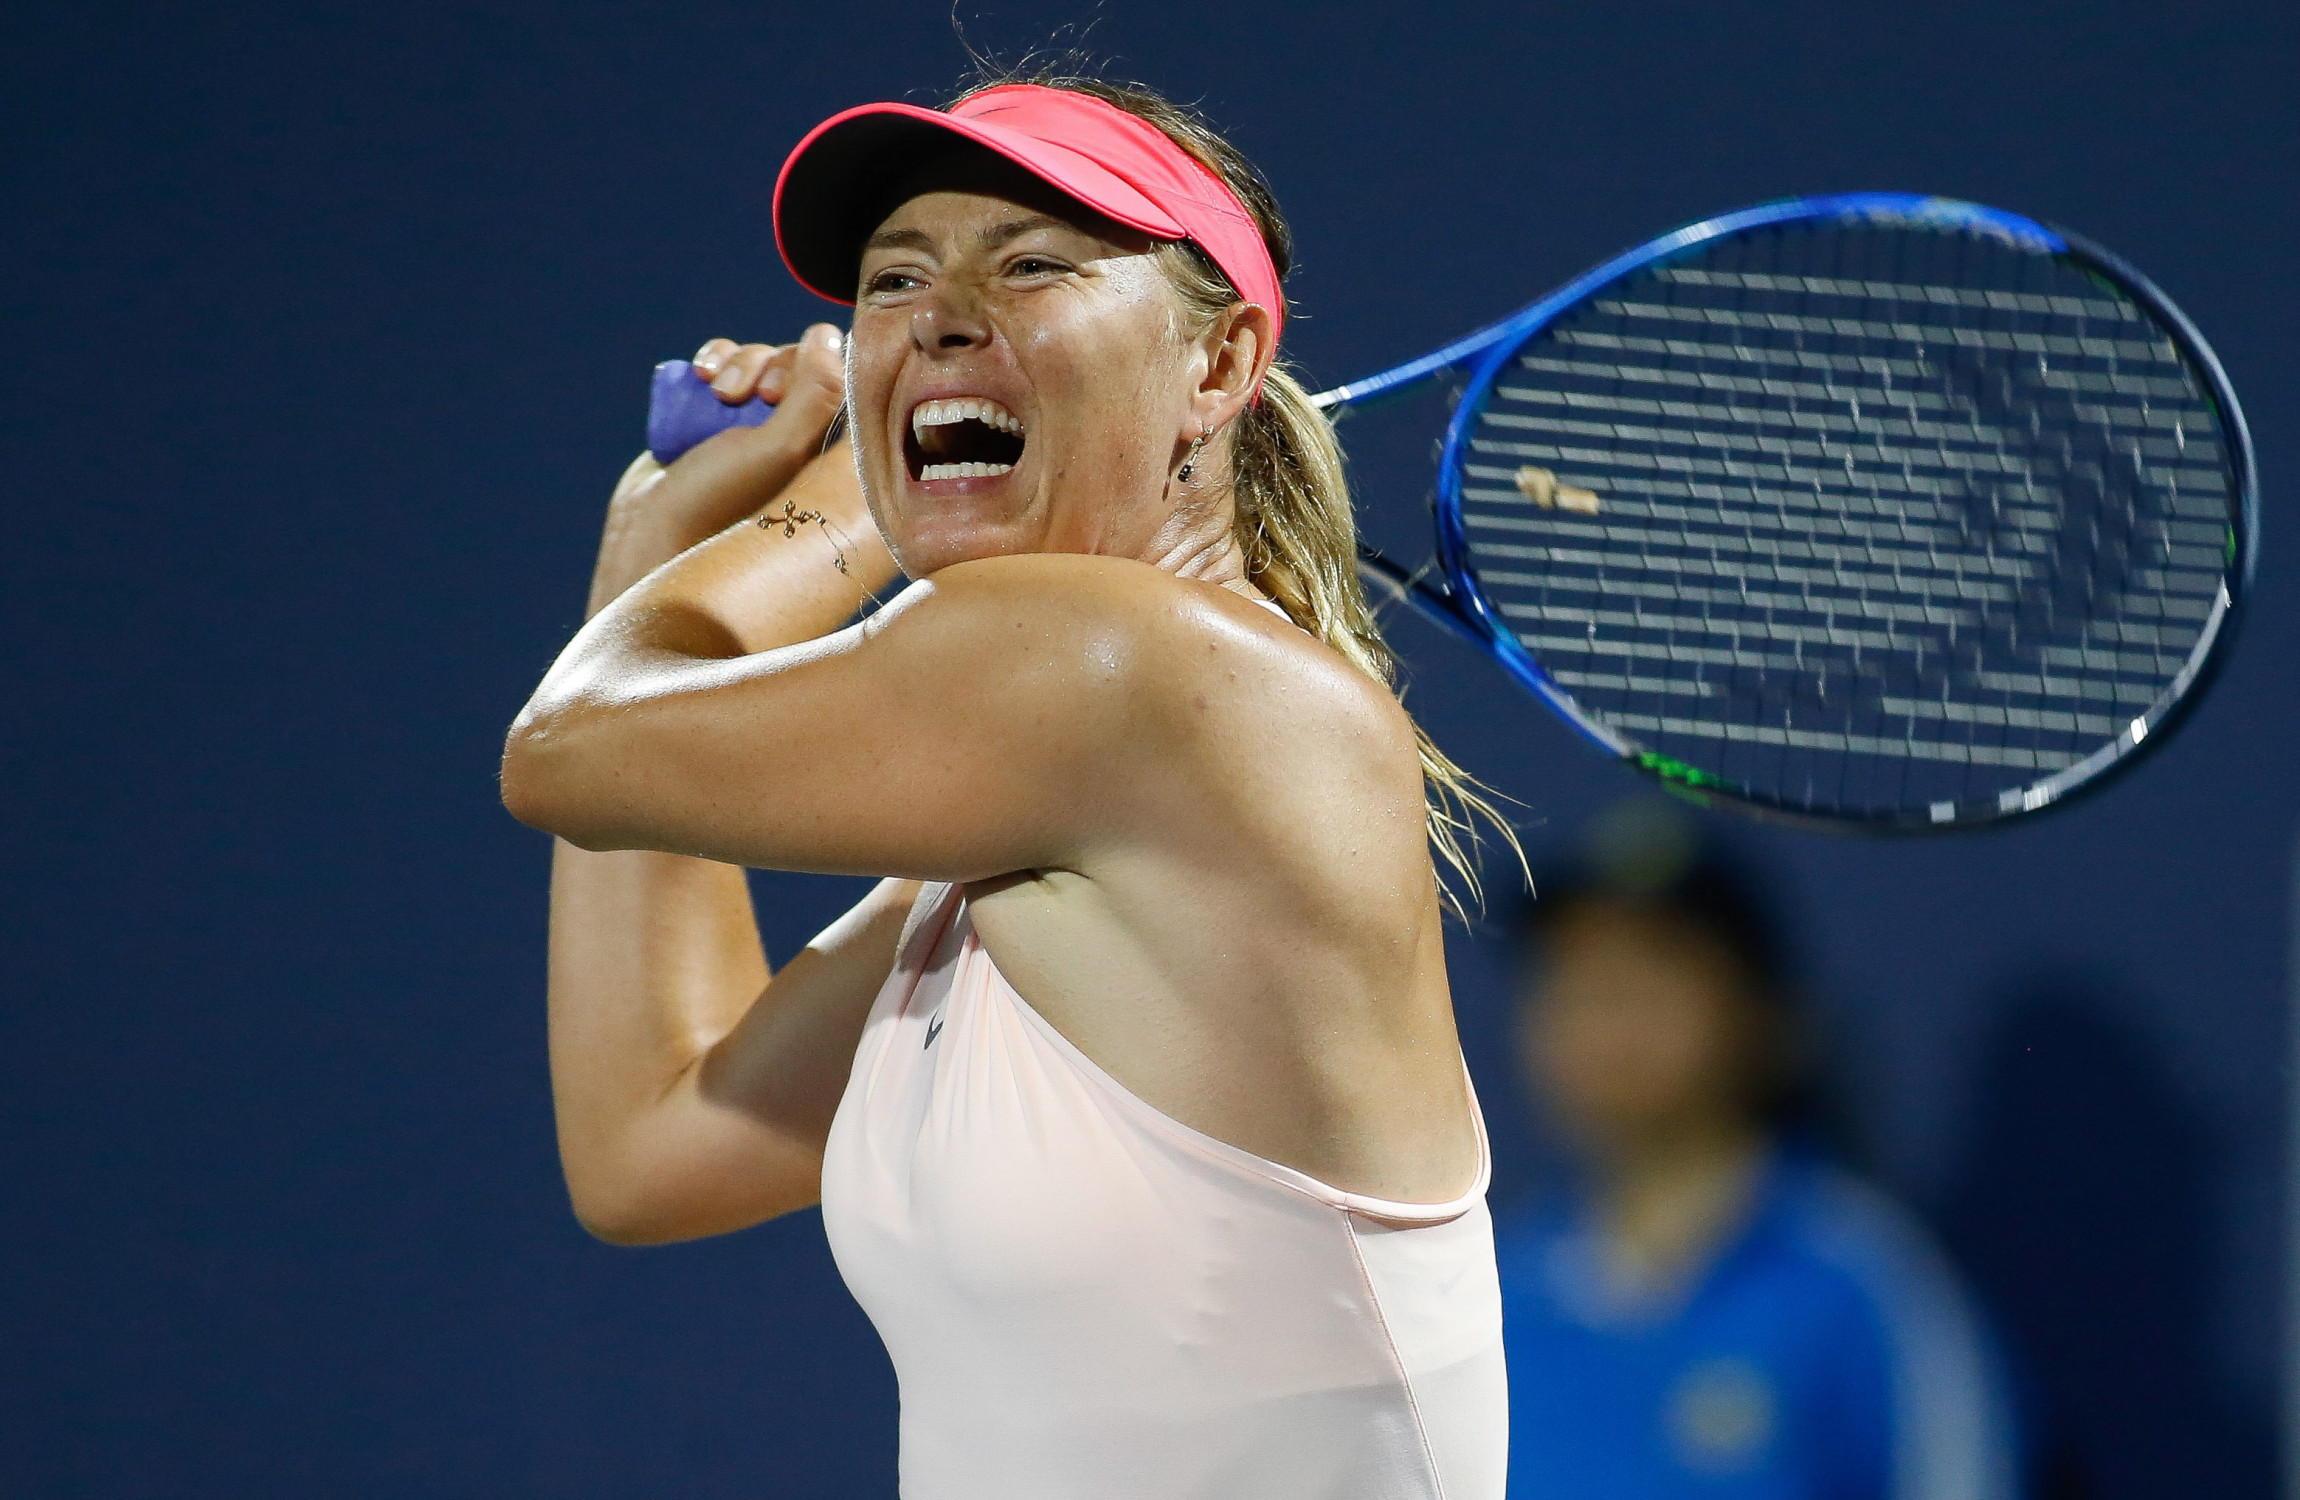 US Open Grand Slam organizers extend wildcard for Russian tennis star Sharapova